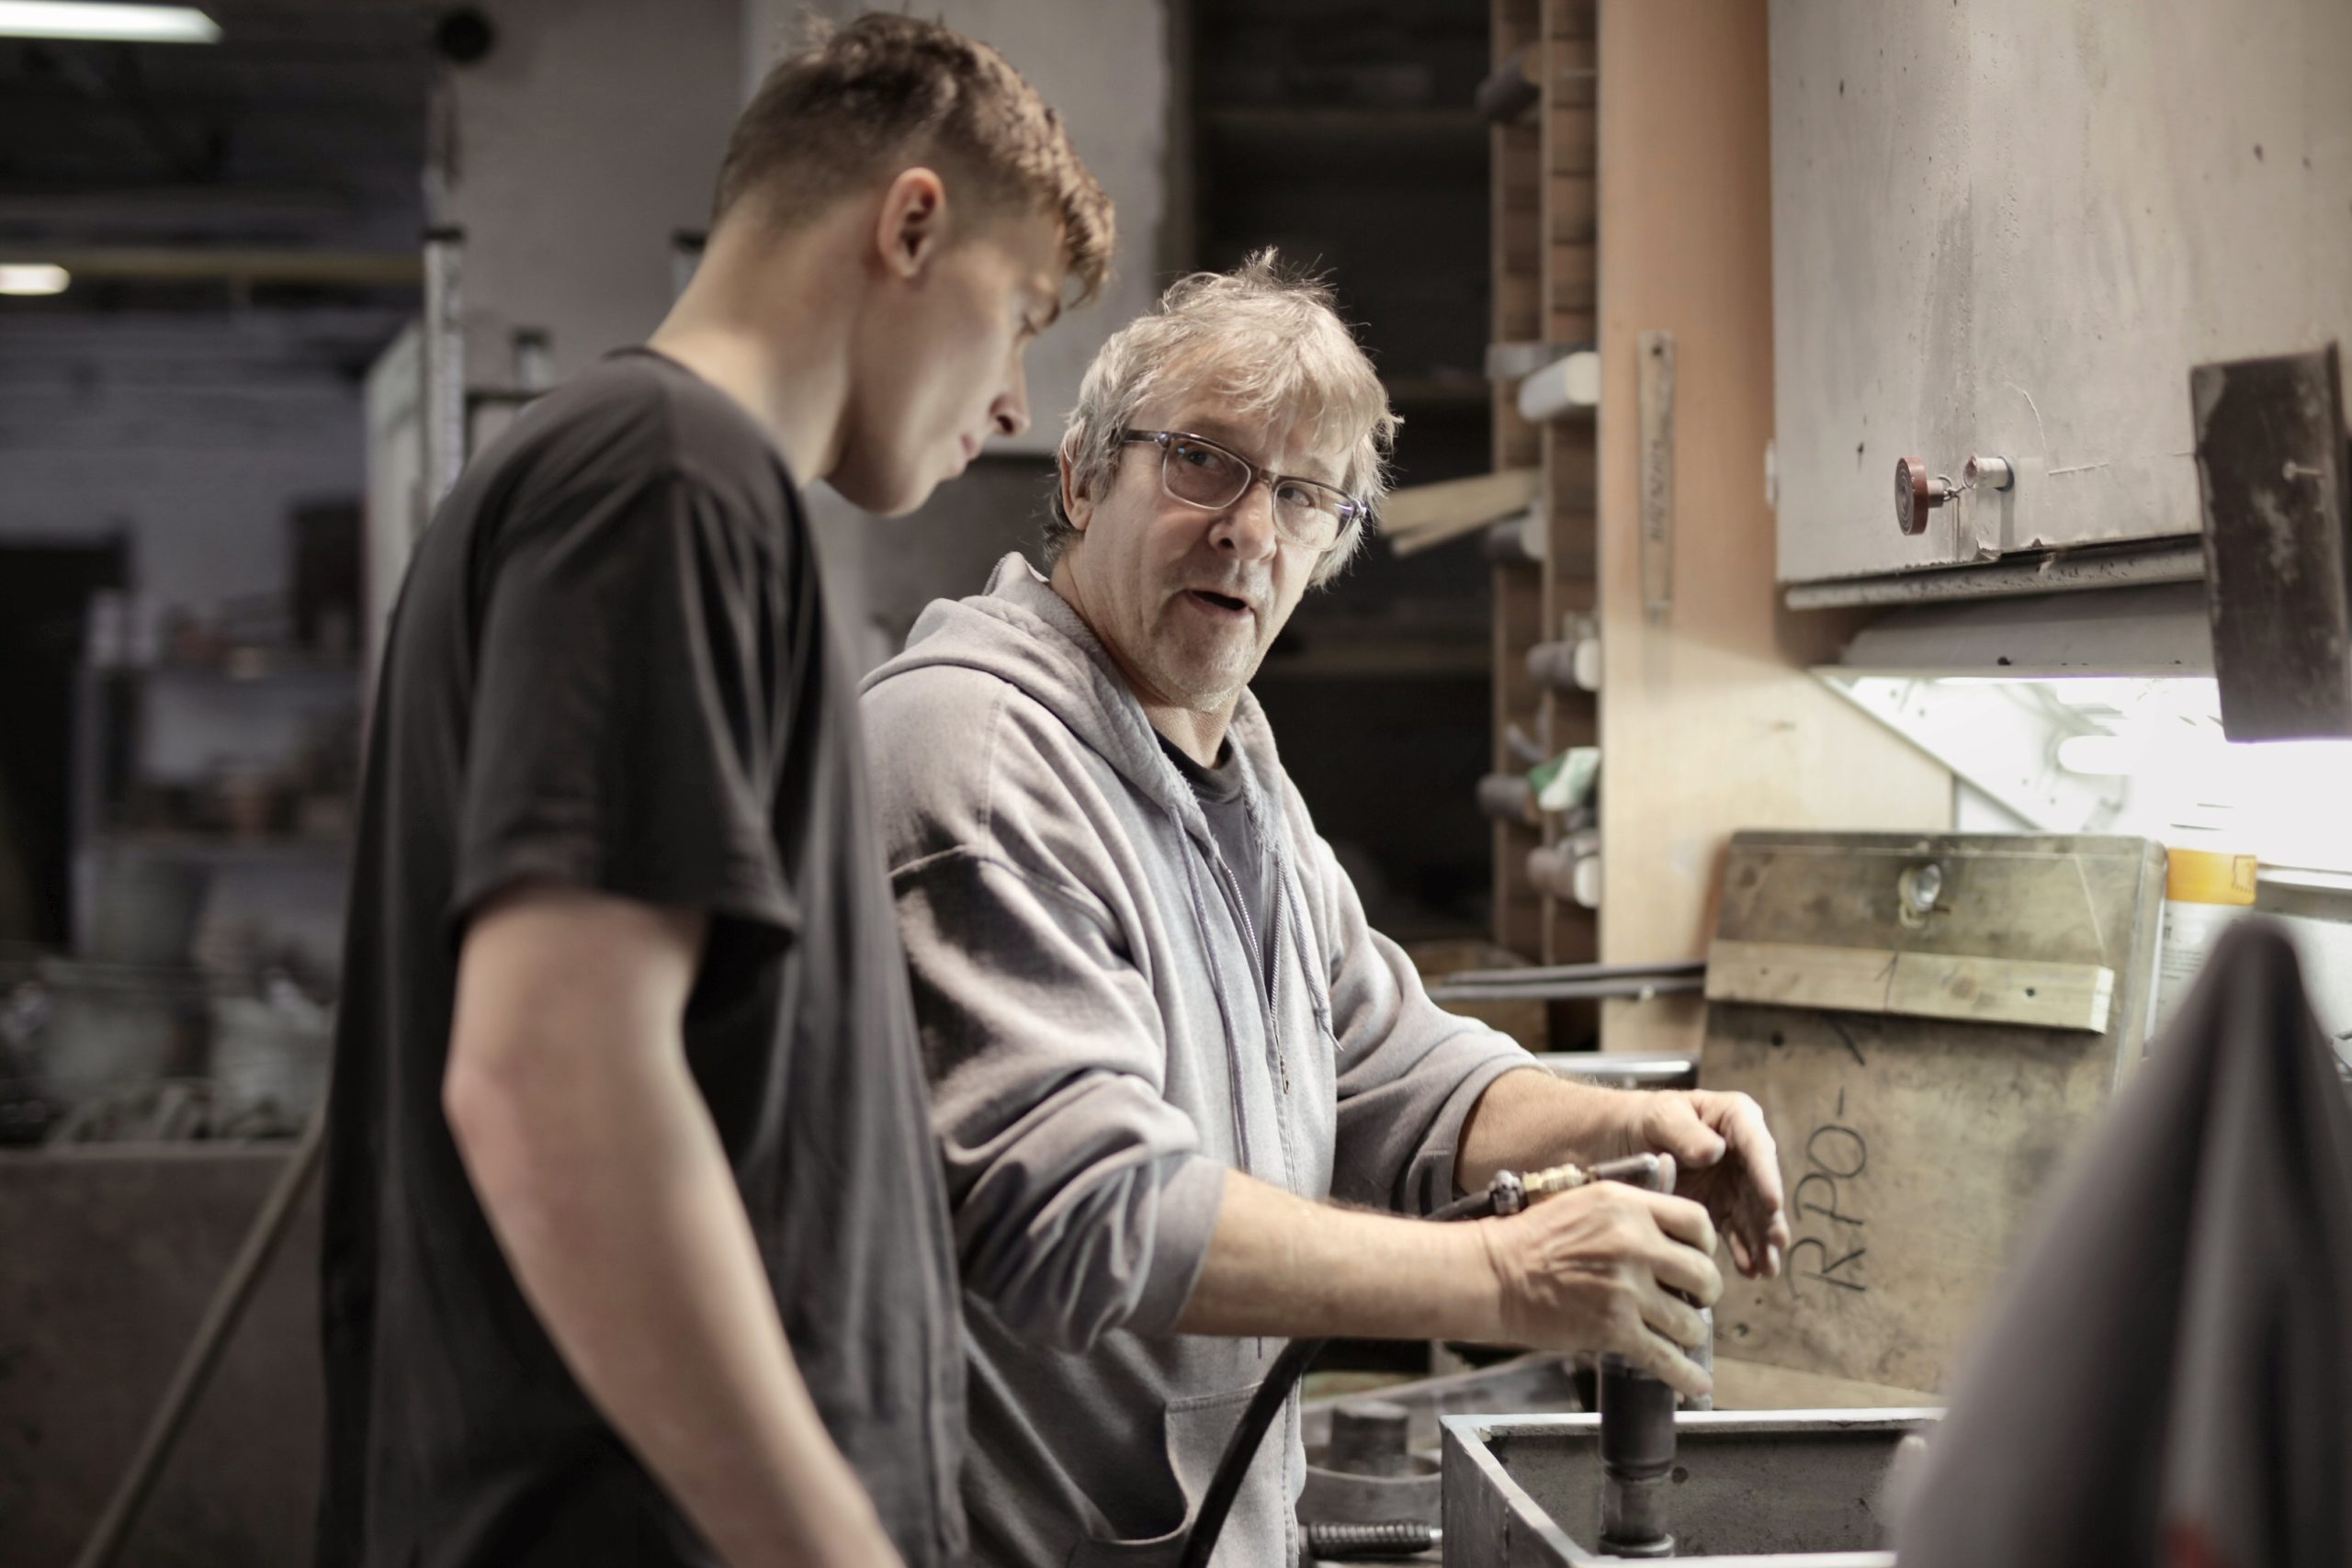 An older man is controlling a mechanism as an apprentice watches.